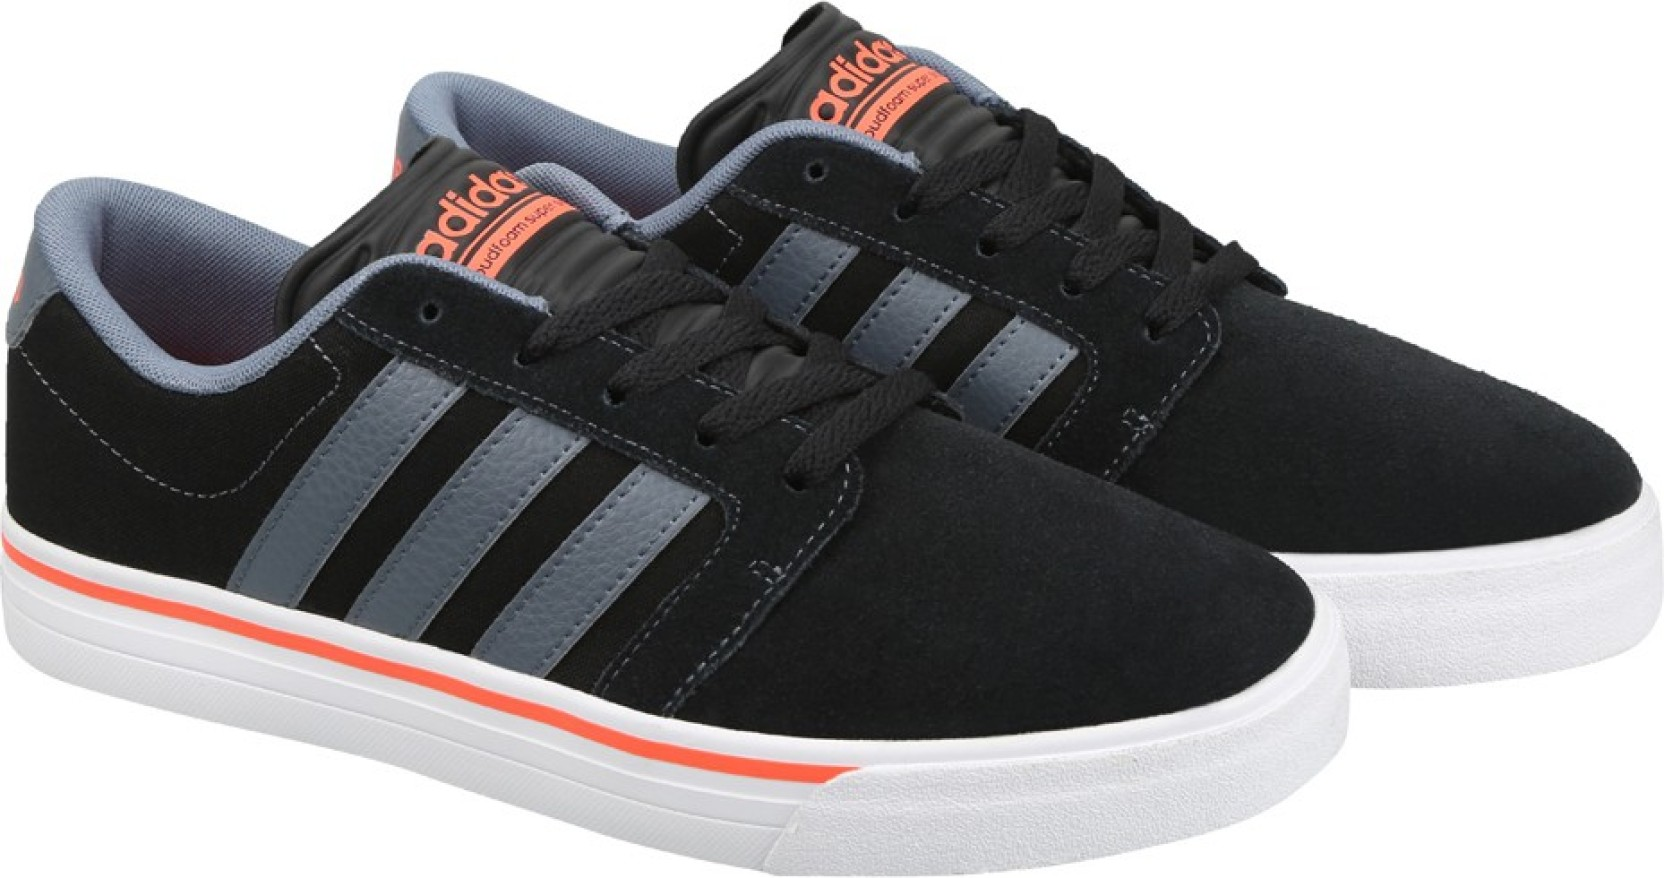 quality design 79ccf c5ade Adidas Neo Shoes Black And Orange ADIDAS NEO CLOUDFOAM SUPER SKATE Sneakers  For Men.